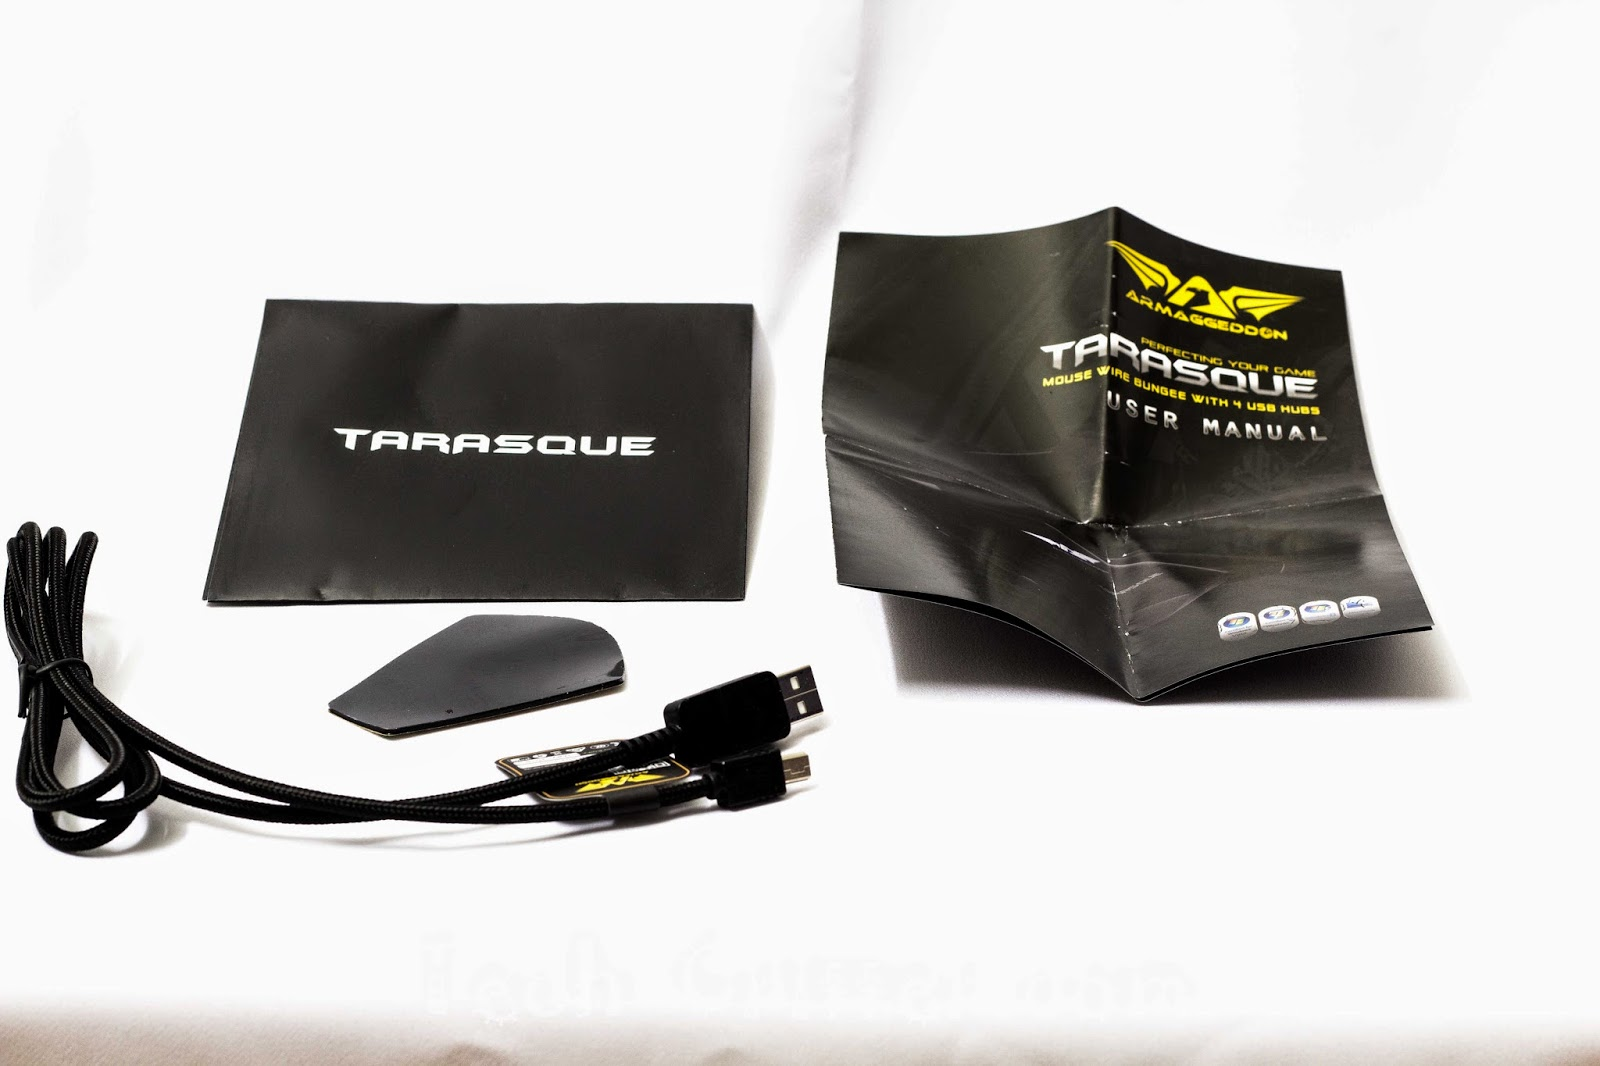 Unboxing & Review: Armaggeddon Tarasque Mouse Bungee 37